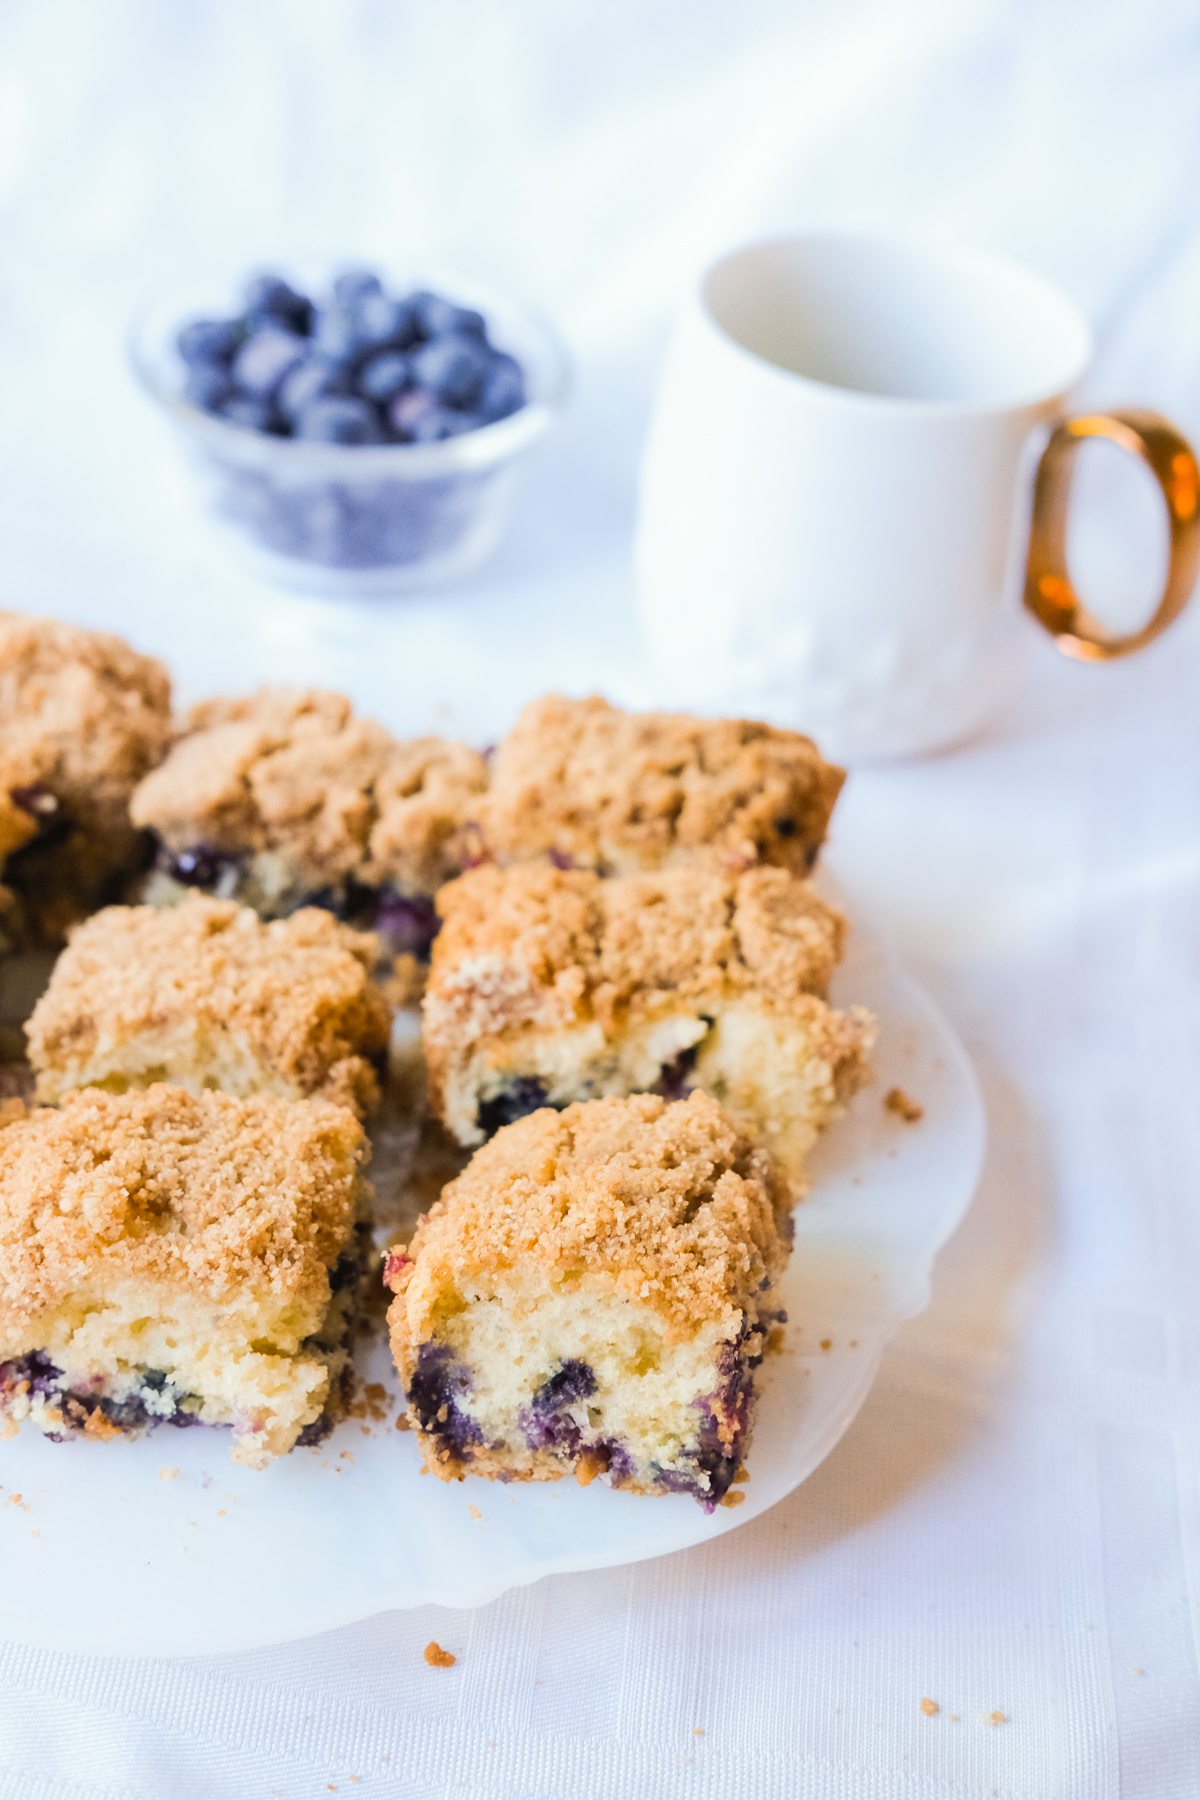 blueberry coffee cake with blueberries and coffee on a kitchen table